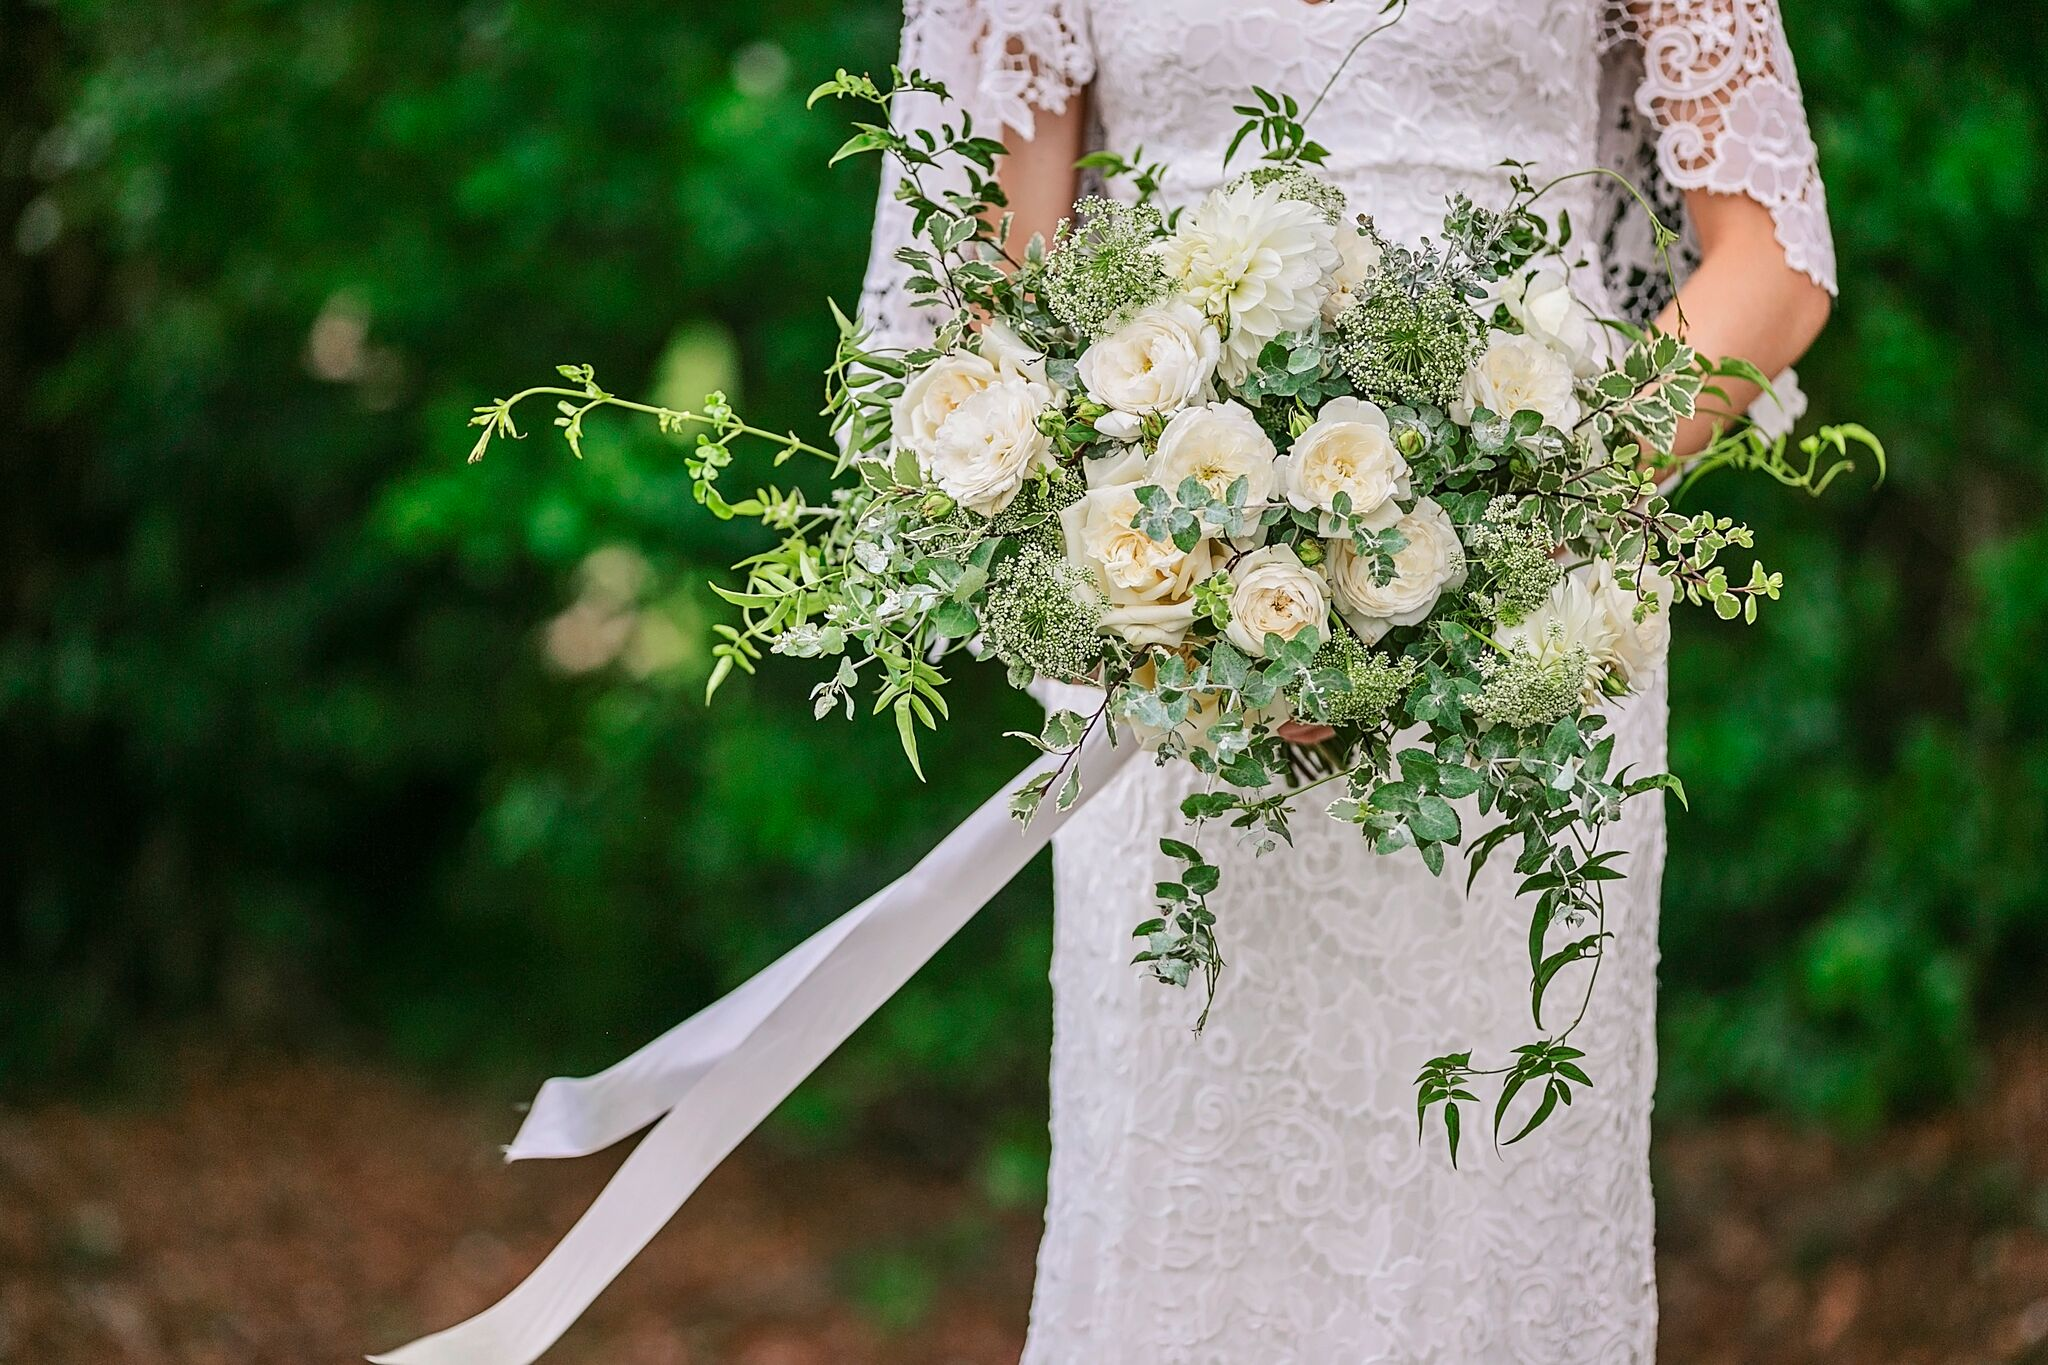 mondo Floral Designs - Specialising in weddings — actually that is all they do — the Mondo Floral Design team are focused on weddings and get super excited about creating luscious floral concepts for your special day.